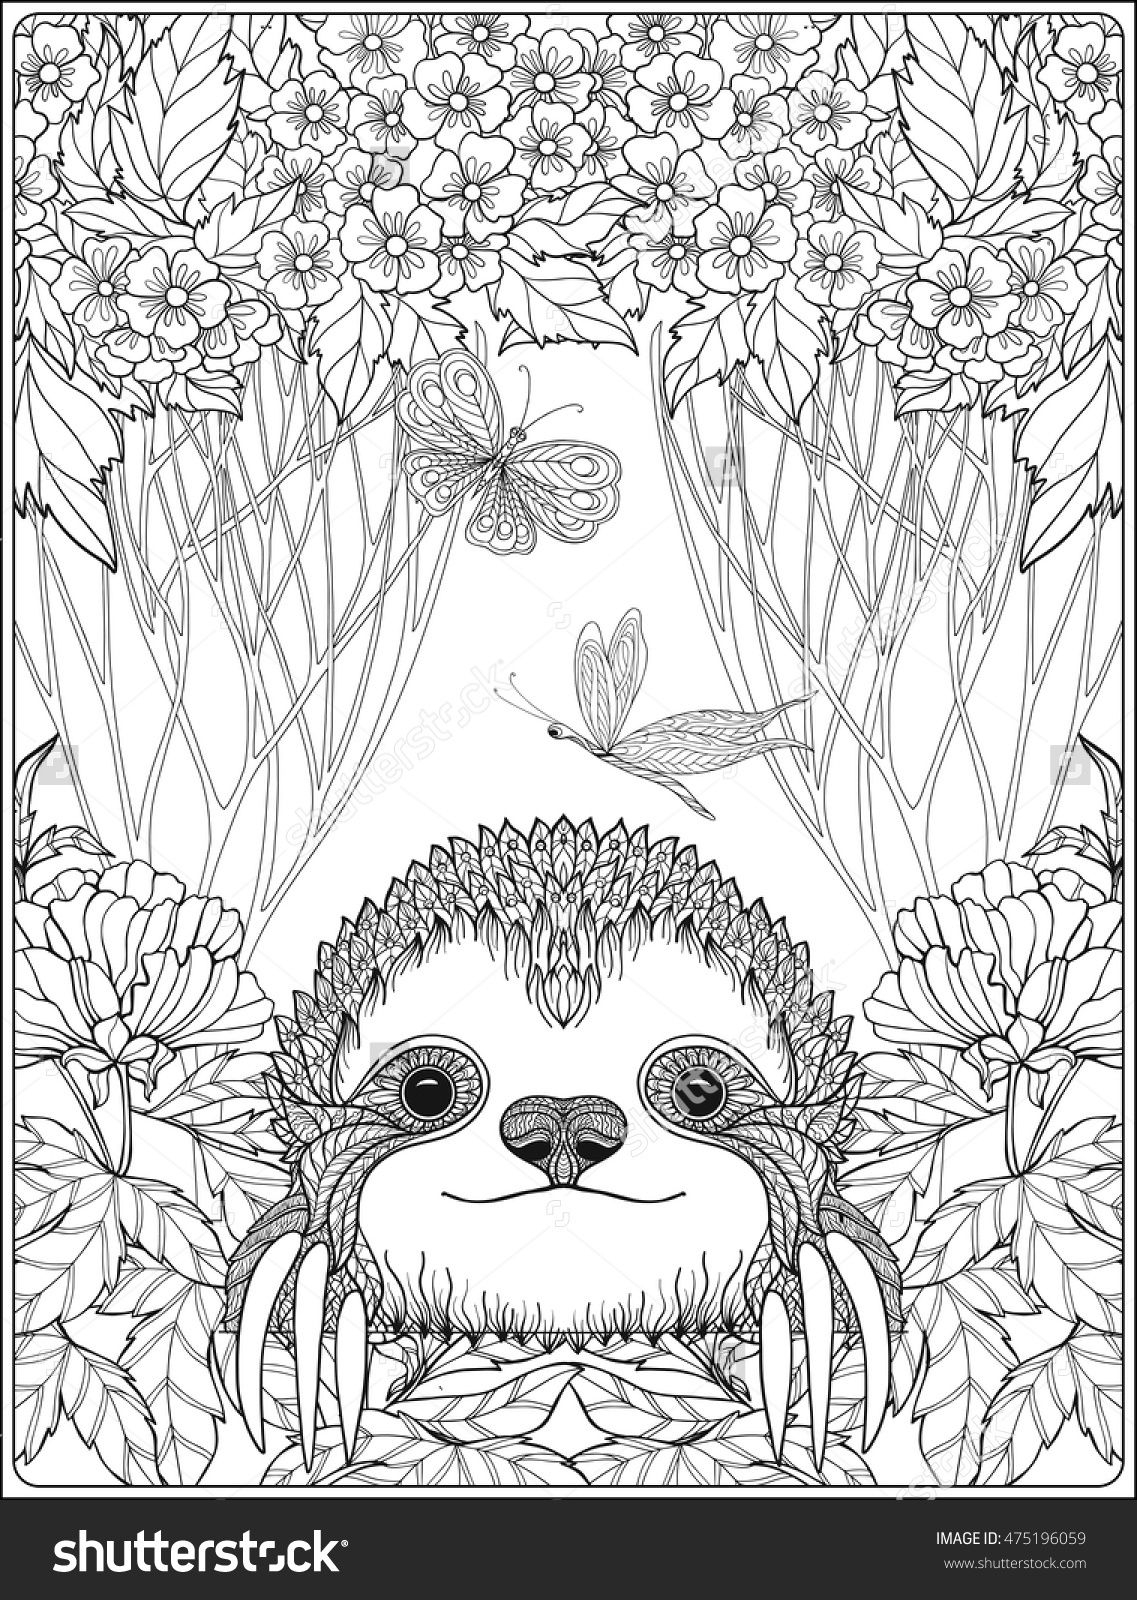 sloth coloring page sloth coloring pages realistic three toed sloth free coloring sloth page